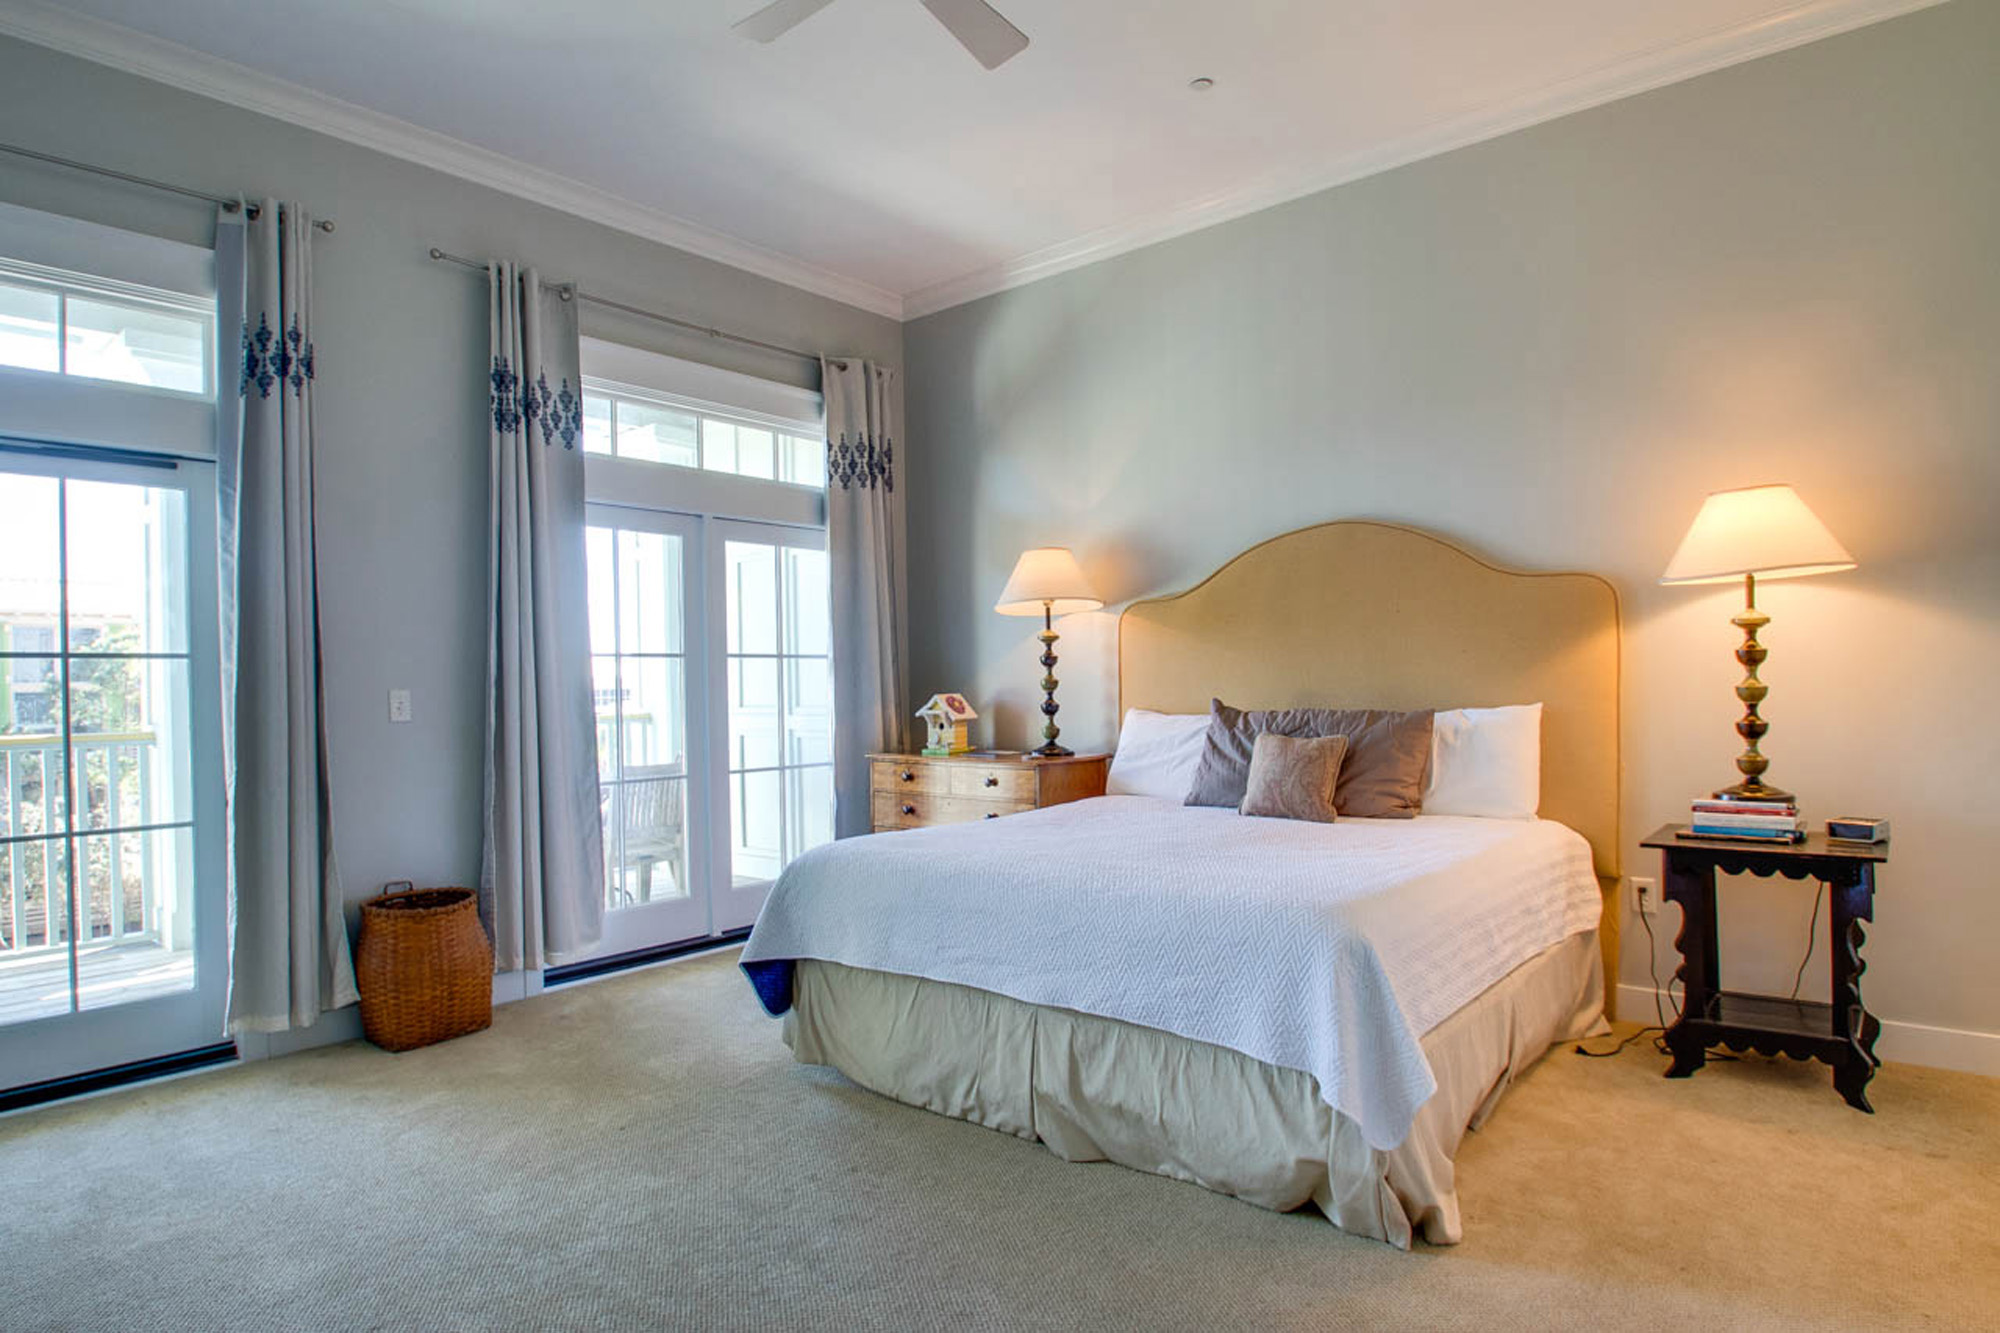 Master bedroom with king sized bed and private balcony.